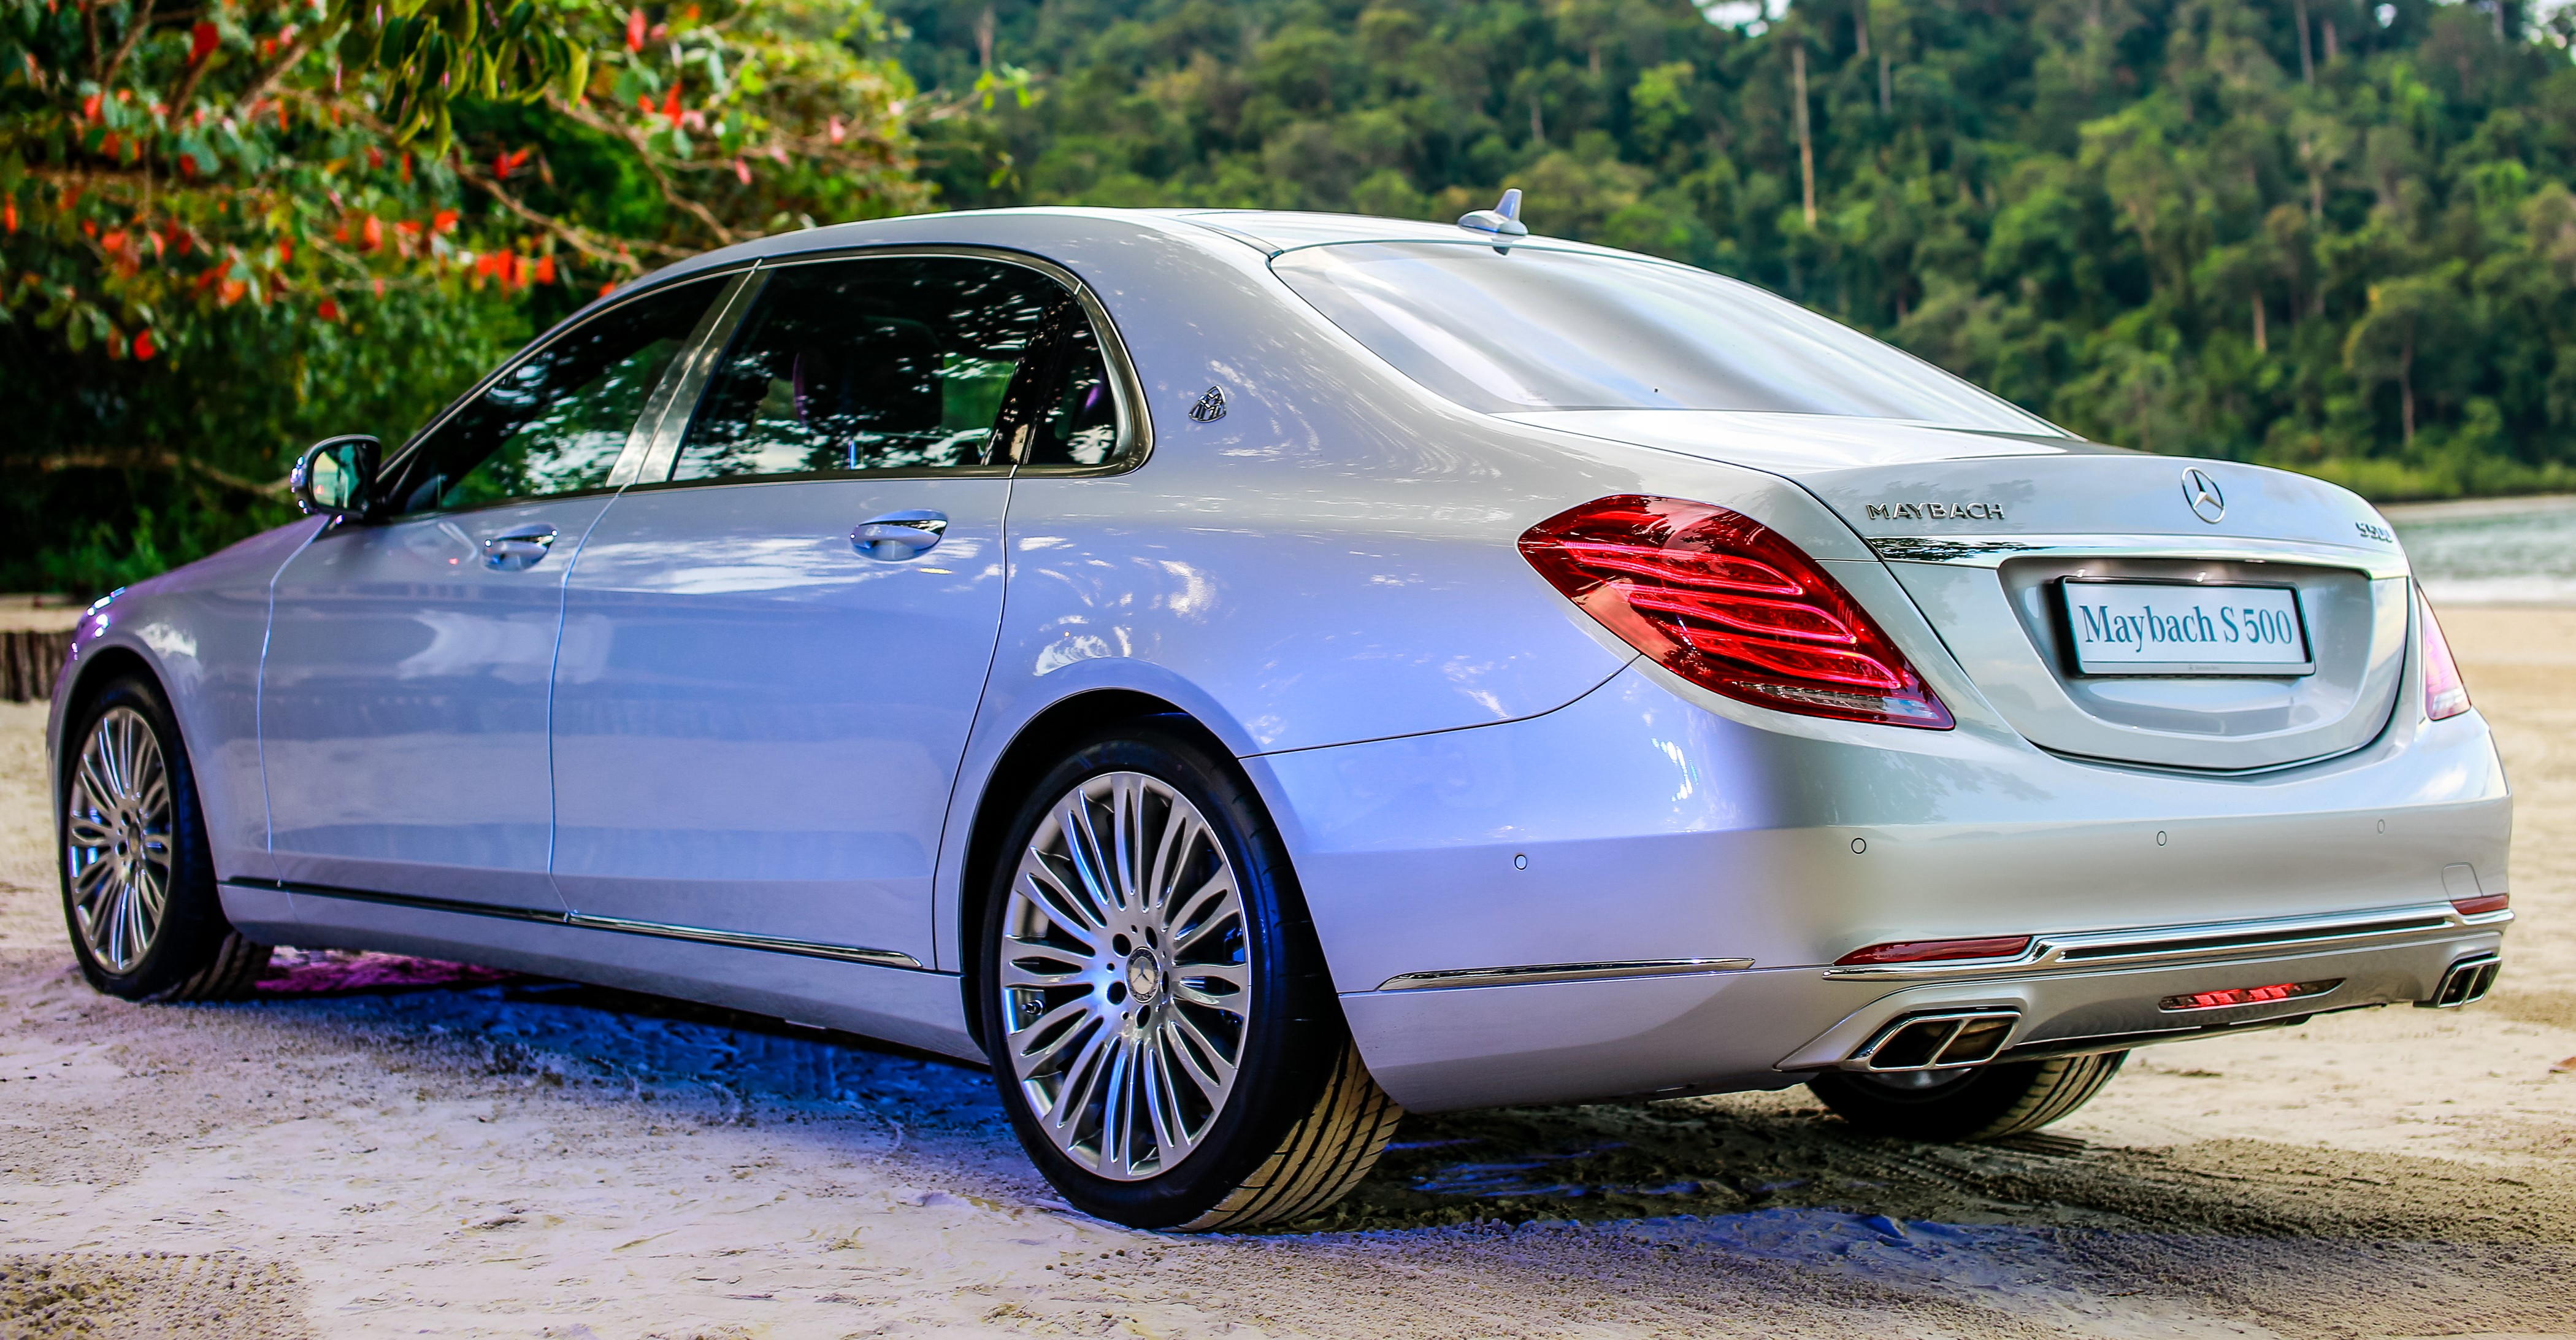 Mercedes Maybach S 500 And S 600 Introduced In Malaysia